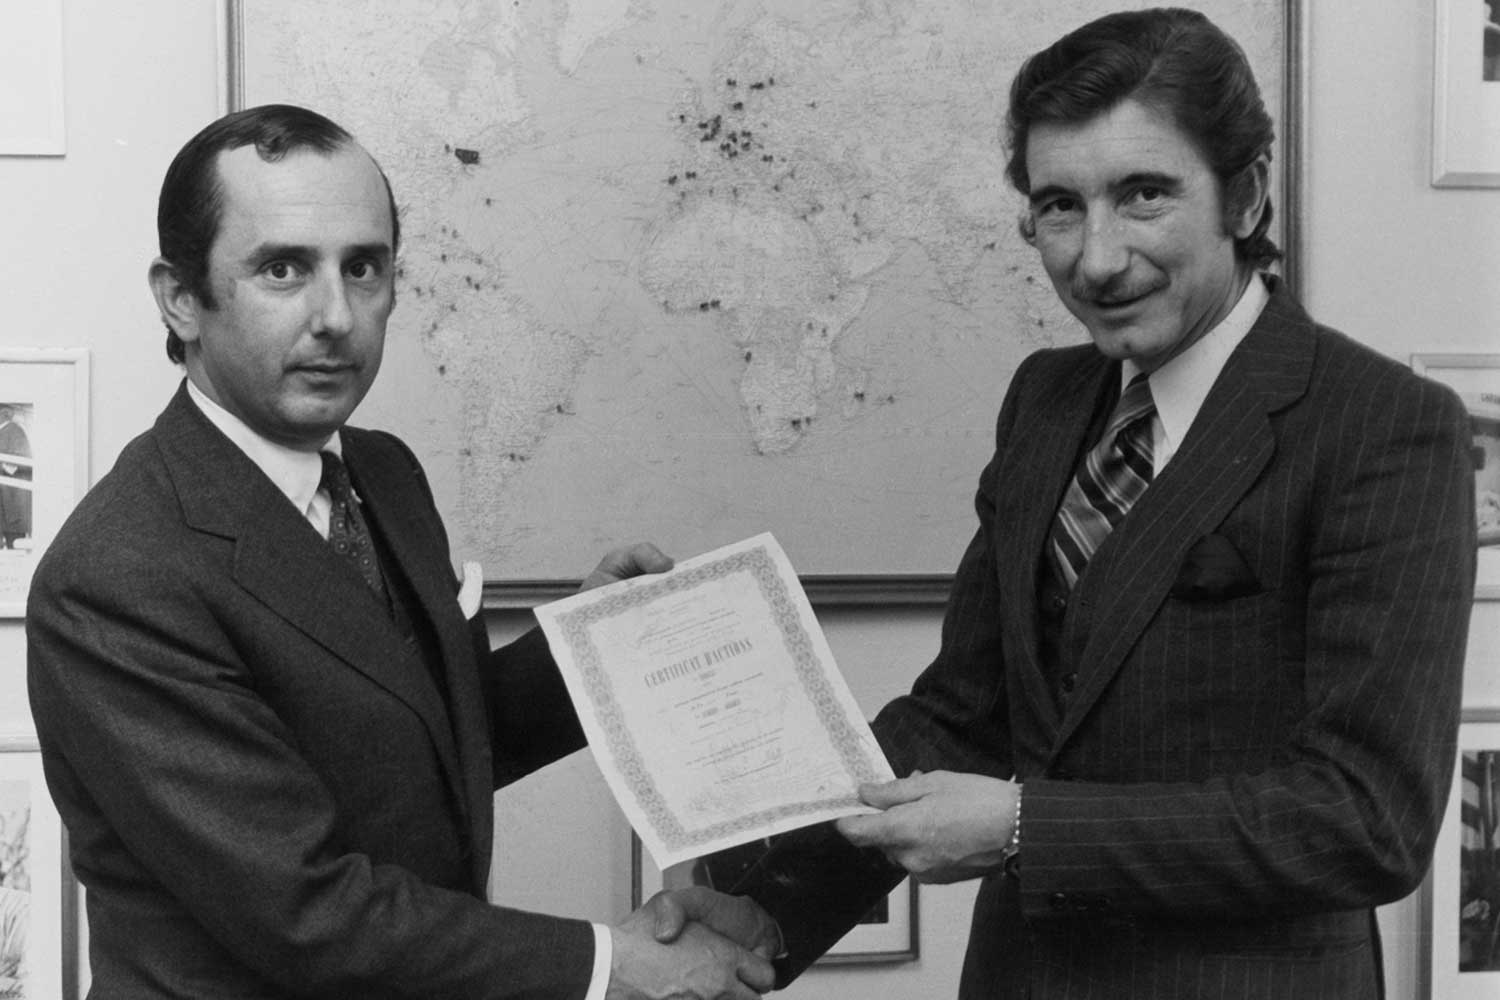 Jack Heuer (left) with Jo Siffert. Siffert was one of the first Formula 1 drivers to be sponsored by a watch company when Heuer signed a partnership deal with him in 1968